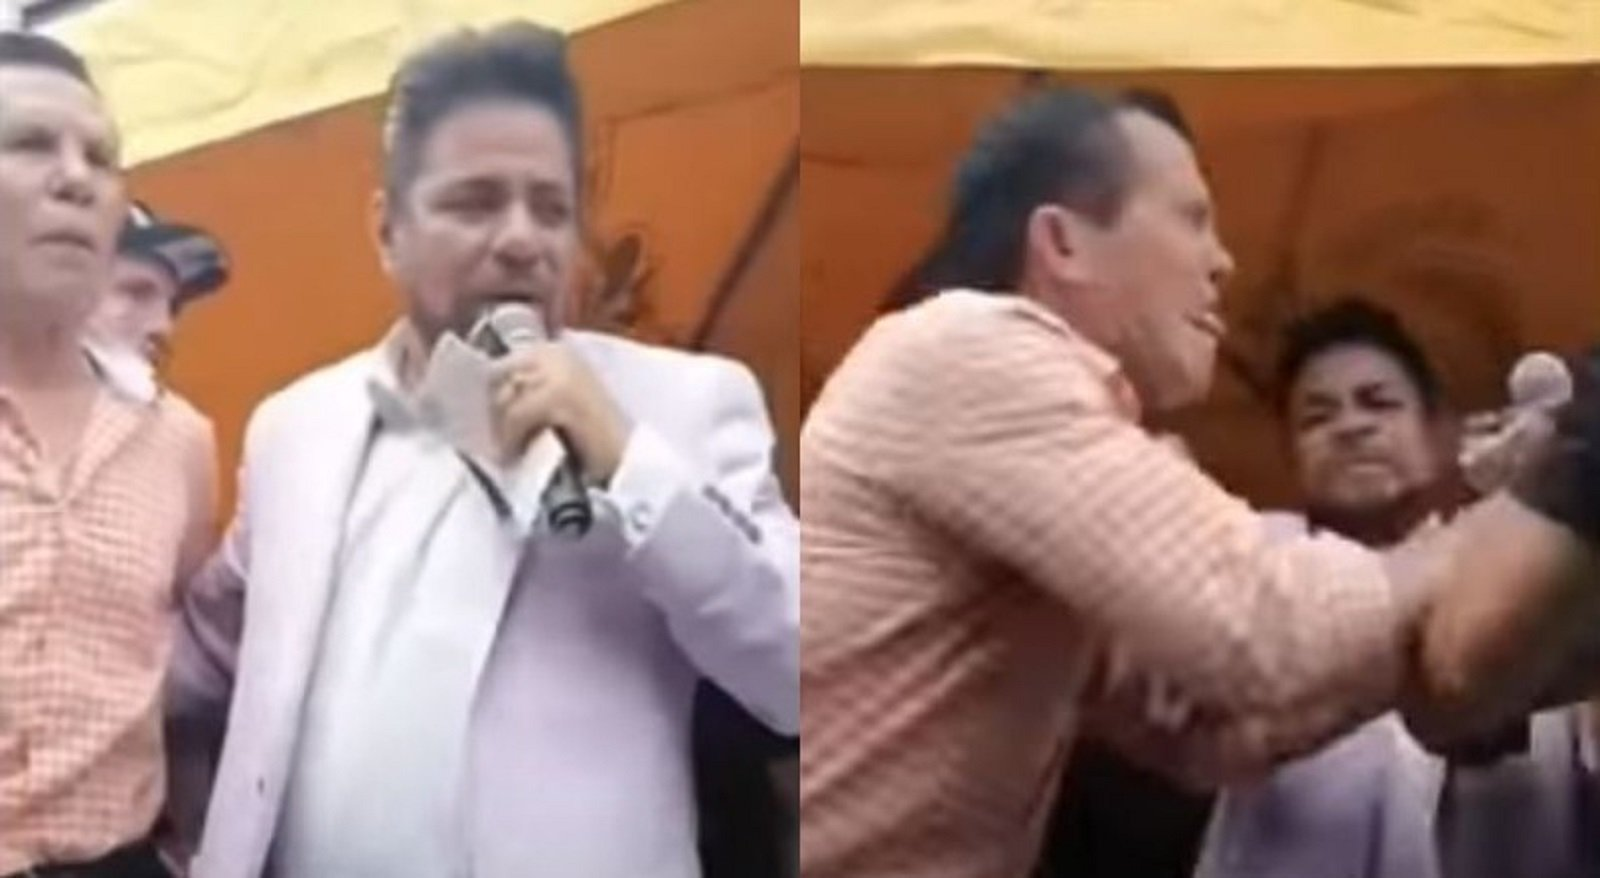 Chavez and Camacho Get Into An Altercation